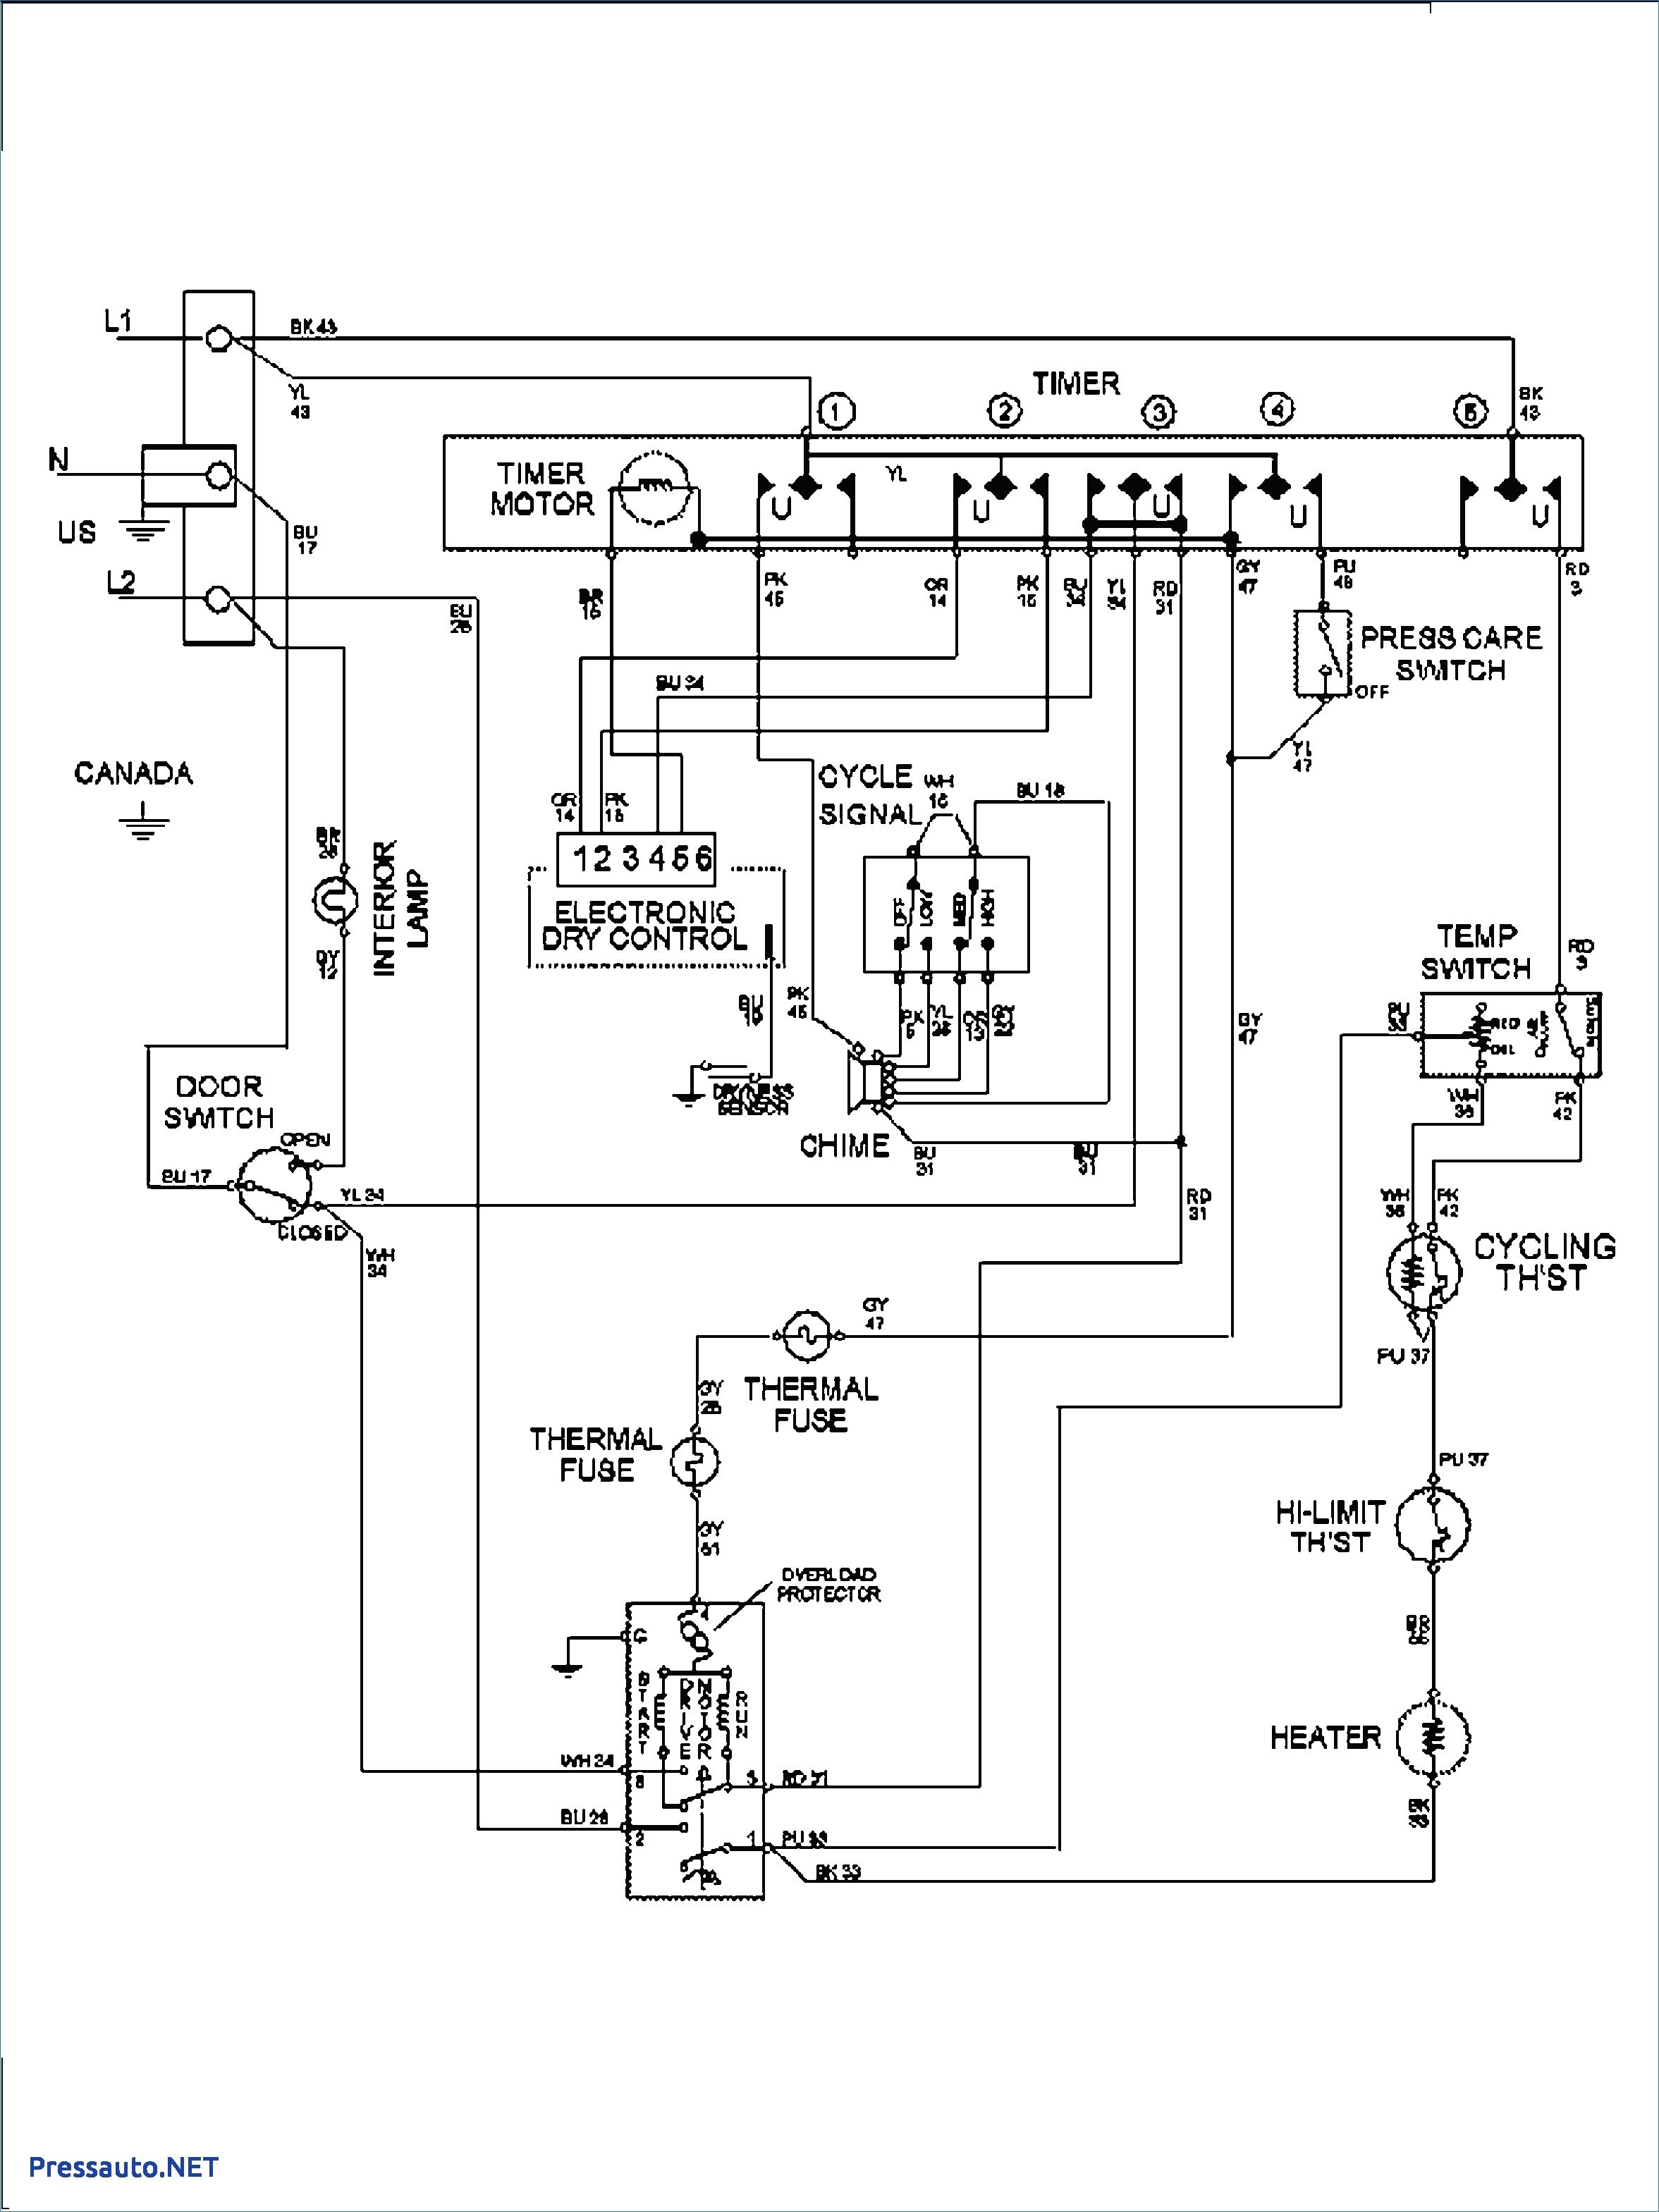 dryer wiring schematic wiring diagramwiring diagram for maytag dryer wiring diagrams schematicmaytag dryer schematic diagram library wiring diagram wiring diagram